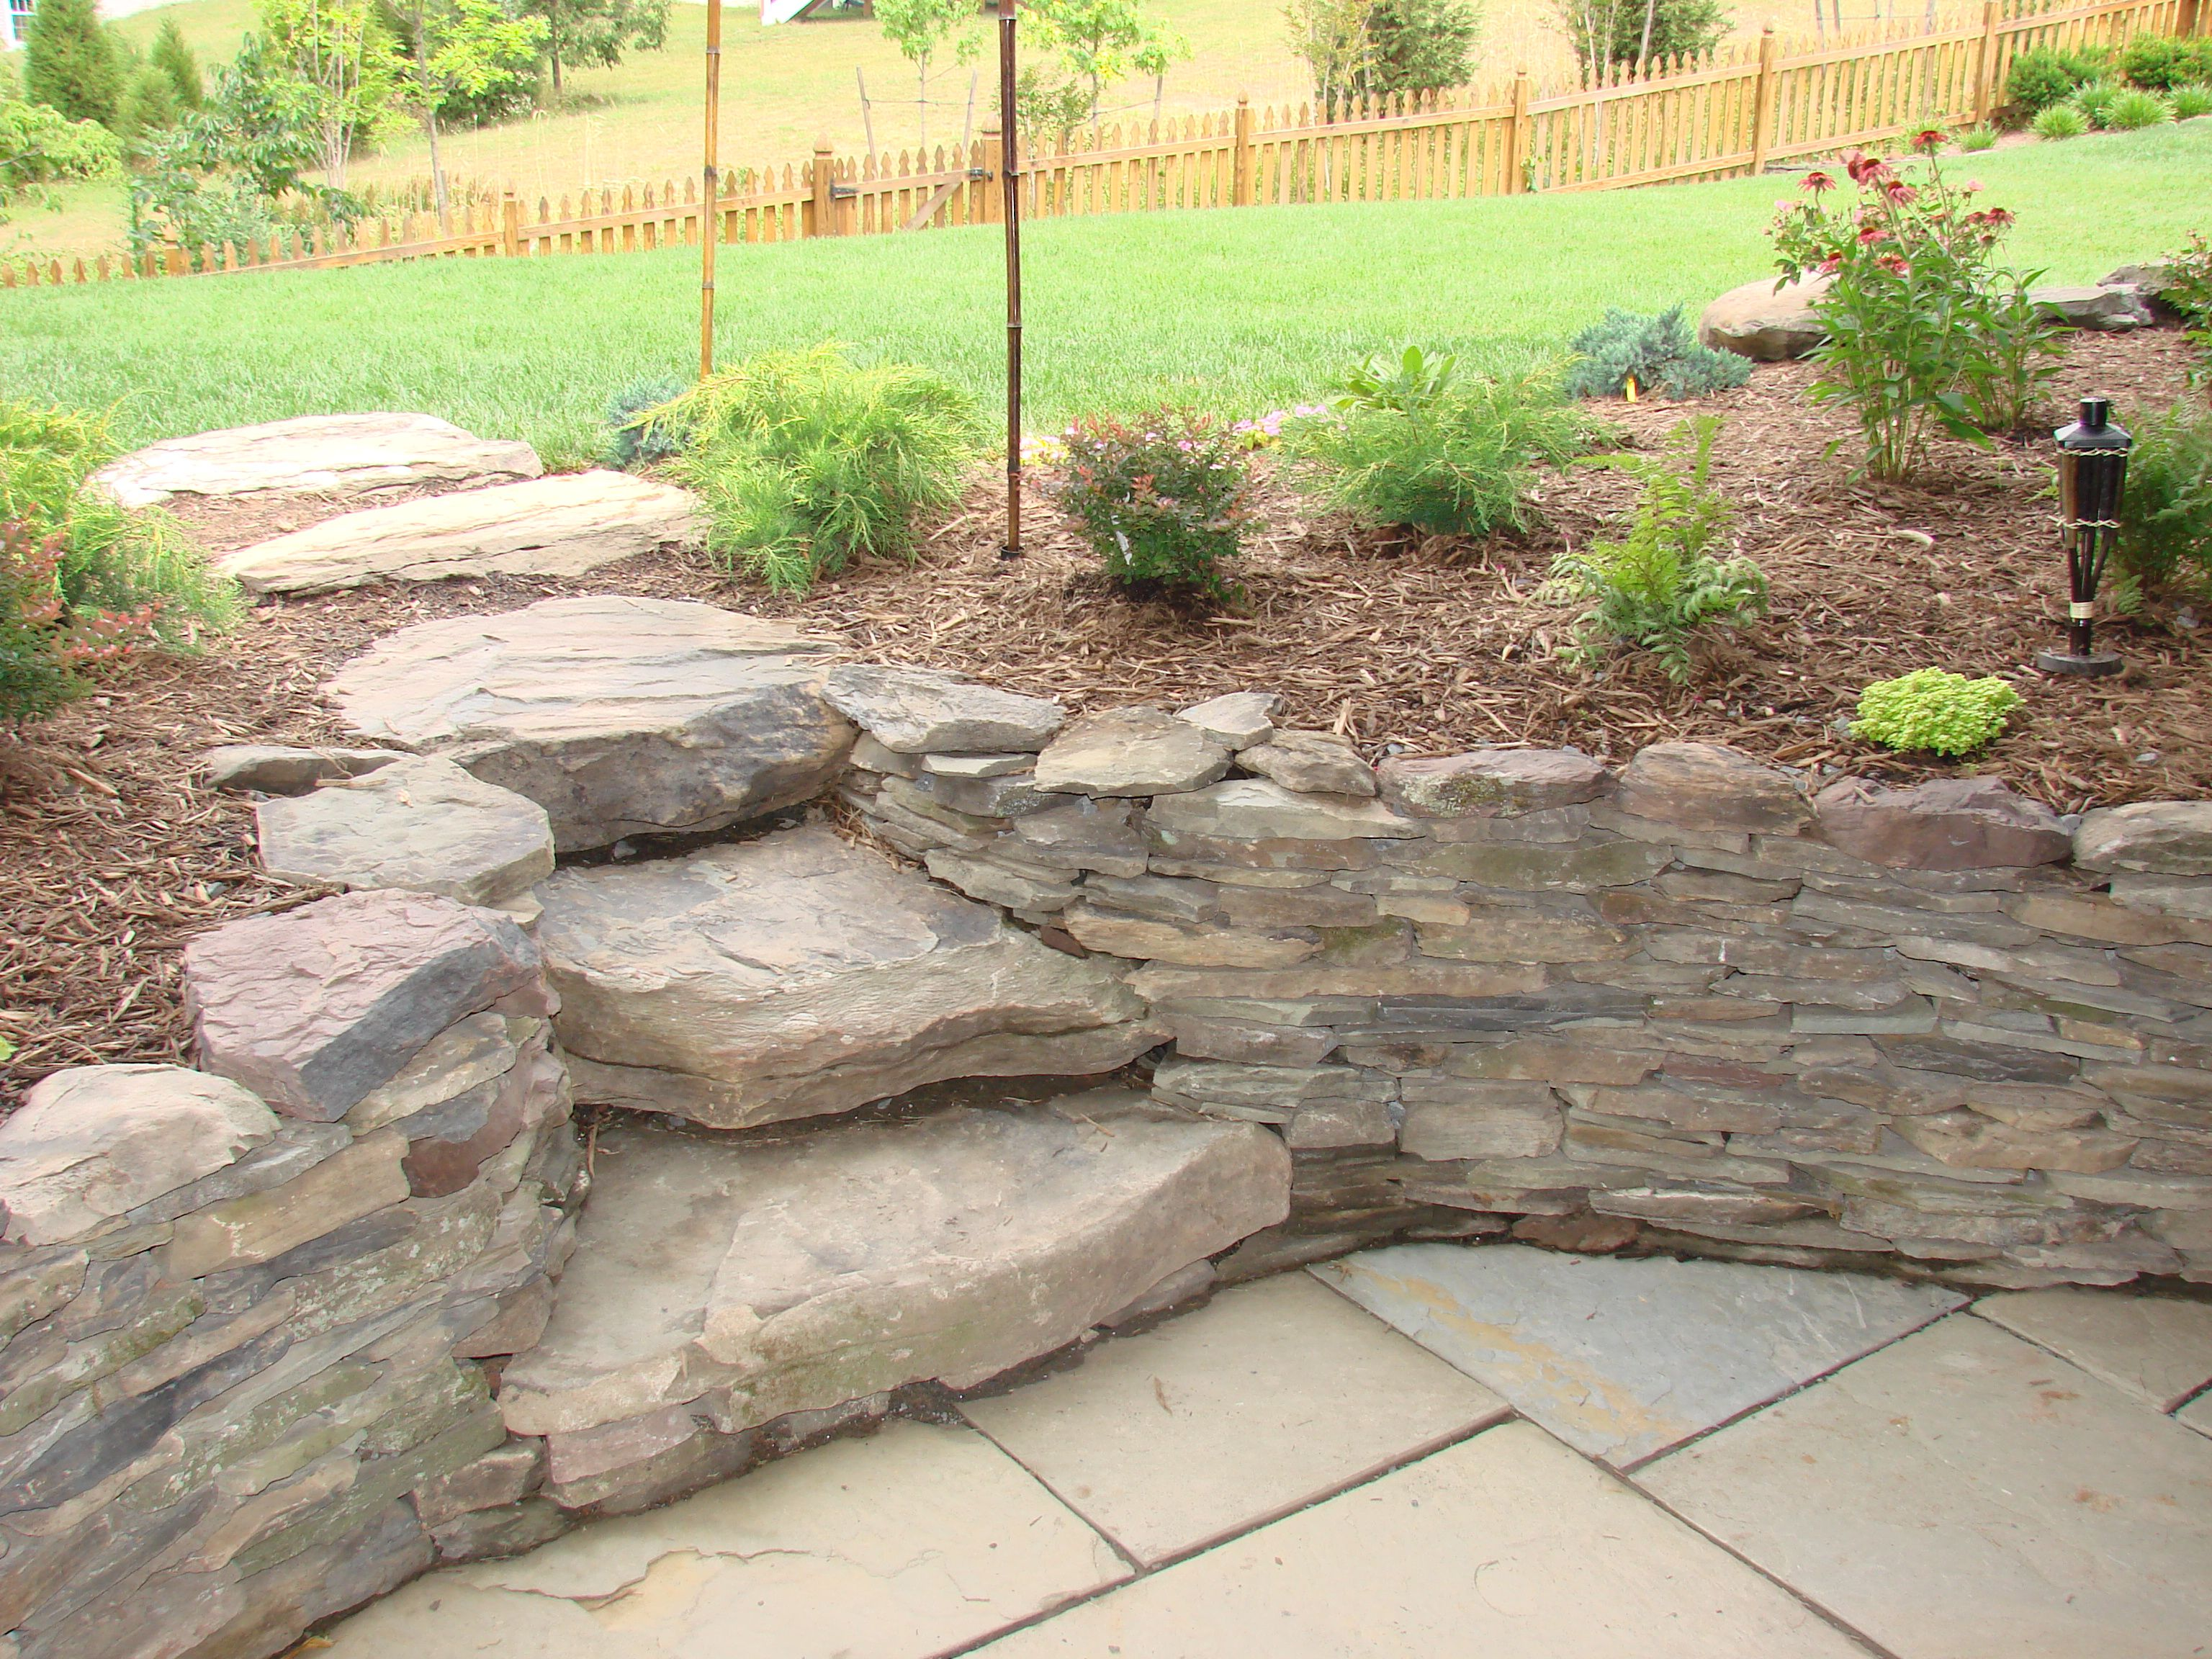 these stone steps allow for easier access in elevation changes